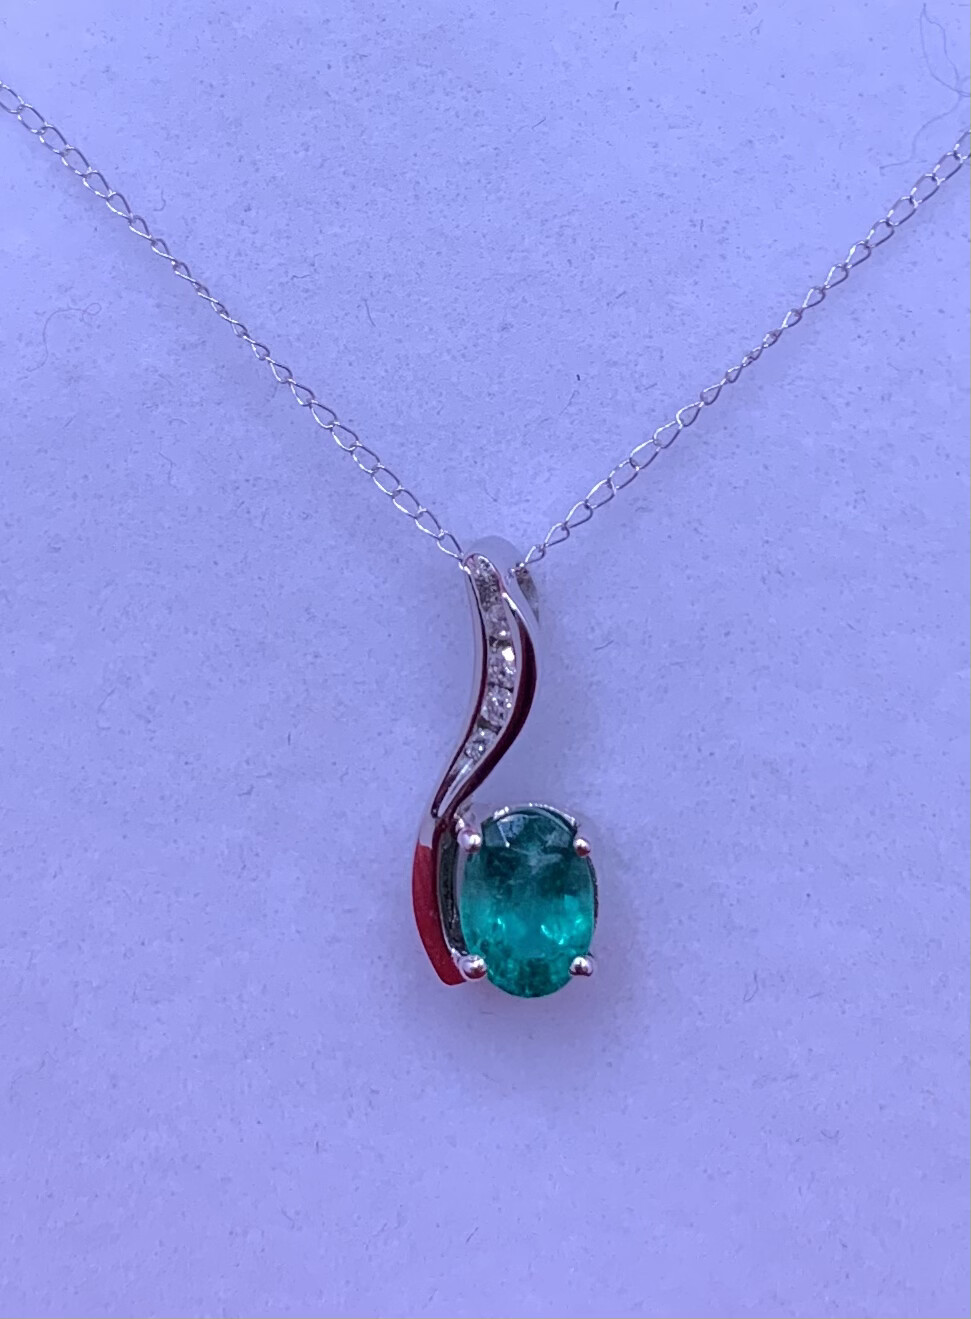 Asymmetrical Oval Emerald With Diamond Accents Necklace